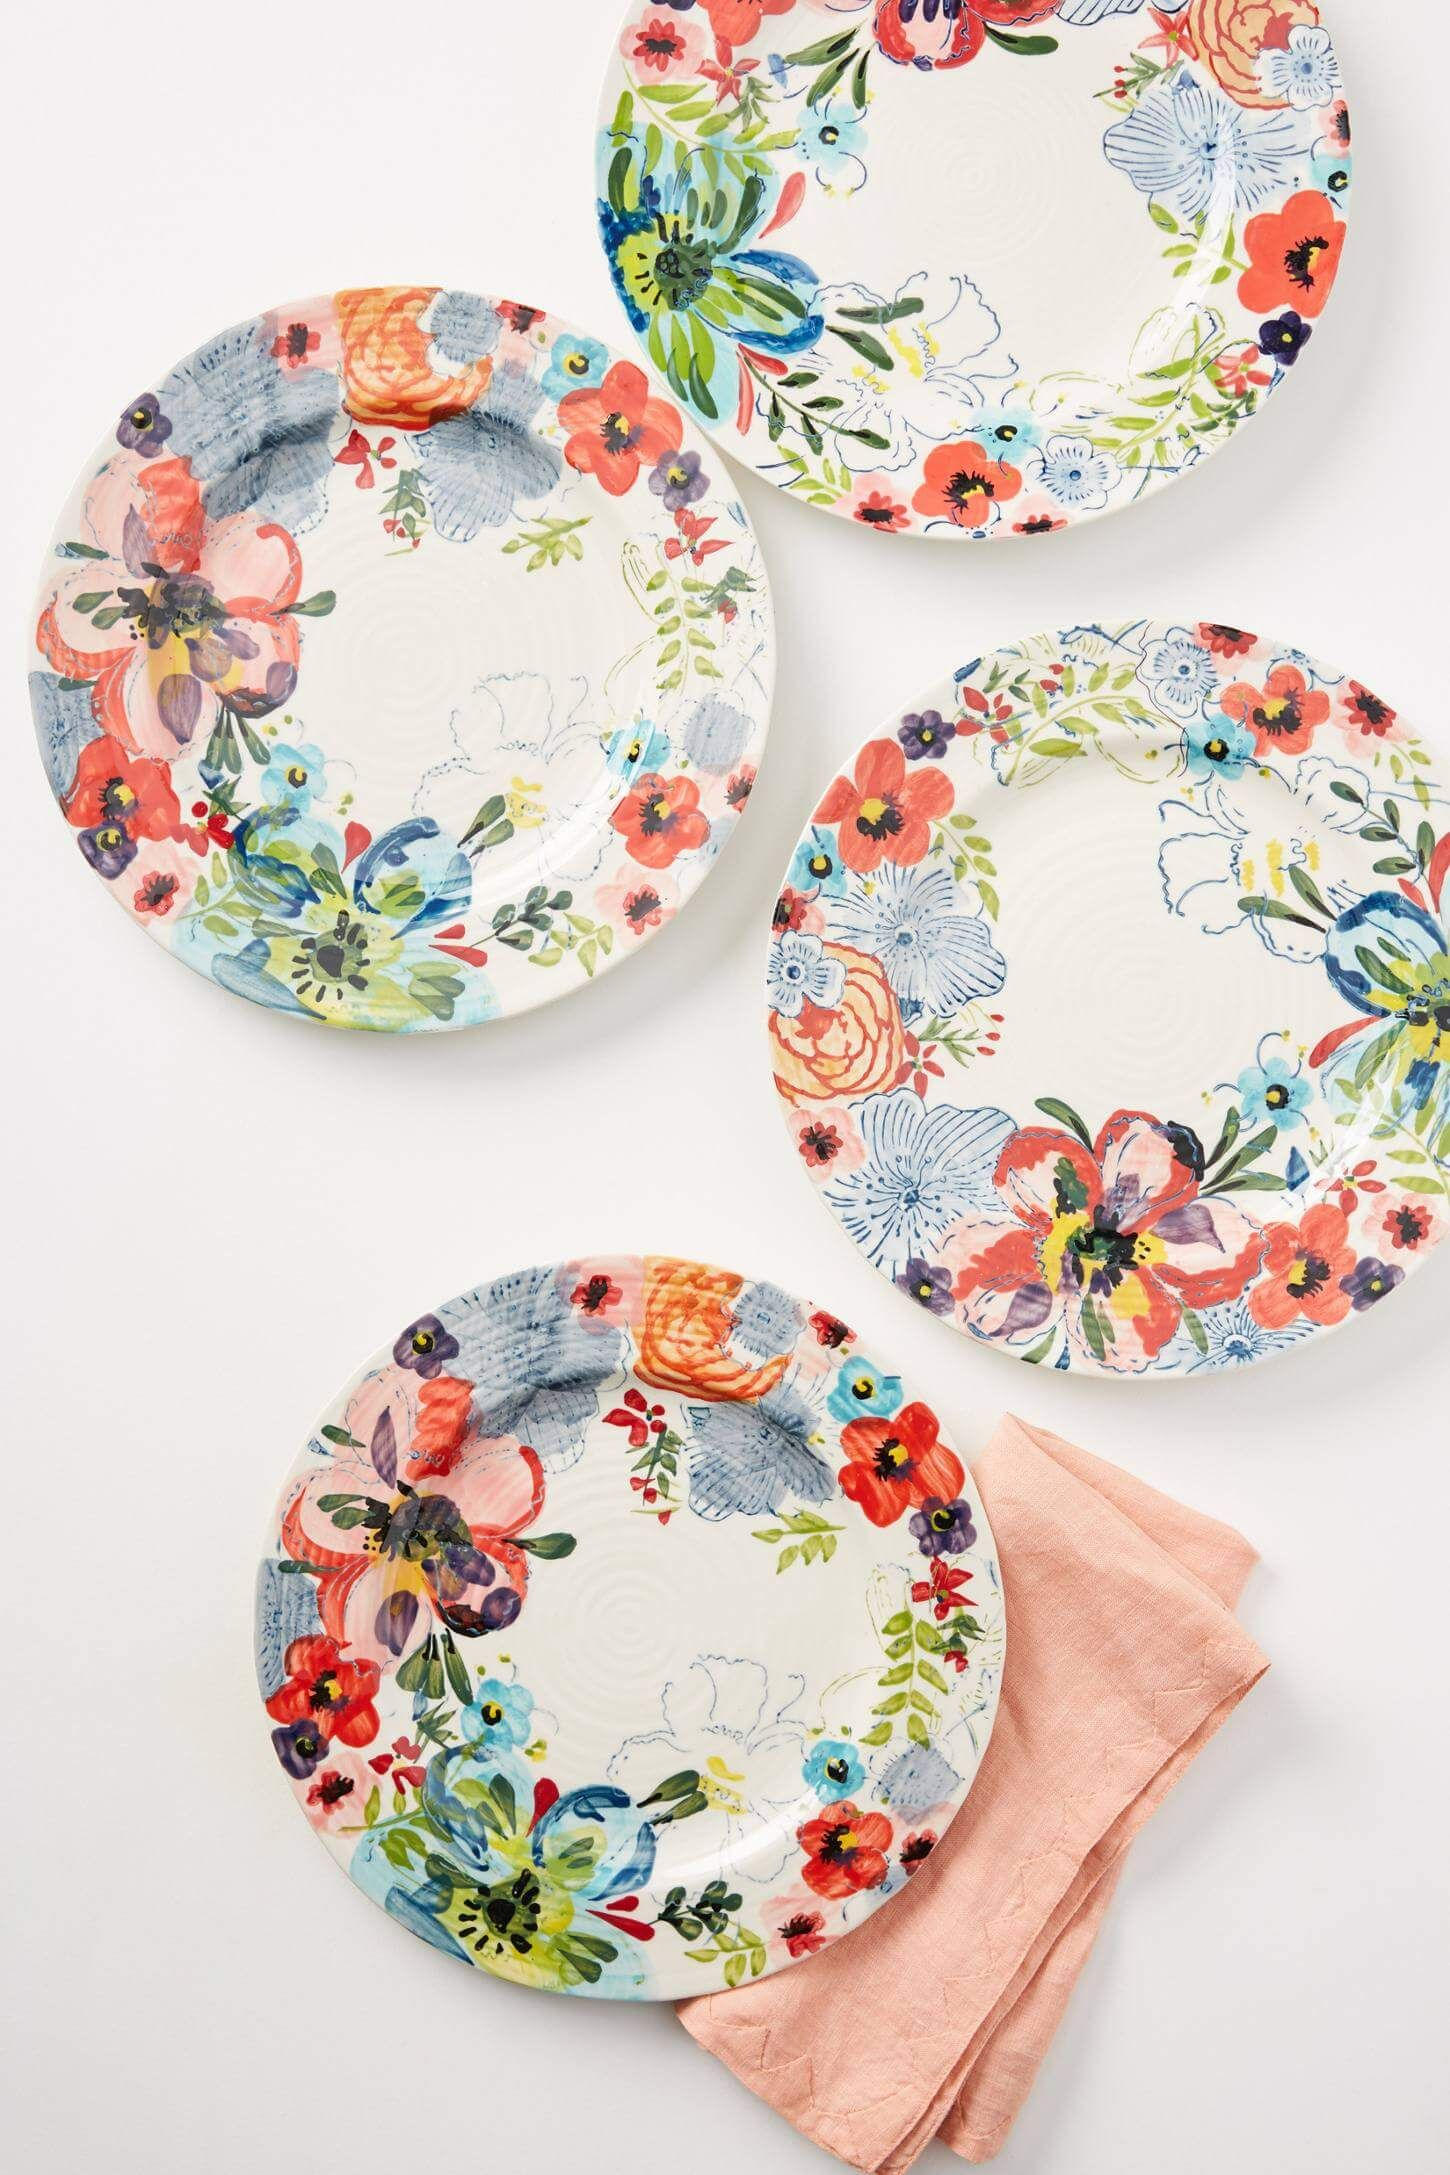 Thanksgiving Dinnerware Floral Ceramic Dinner Plates From Anthropologie Nonagon Style Dinner Plates Dinnerware Sets Pottery Painting